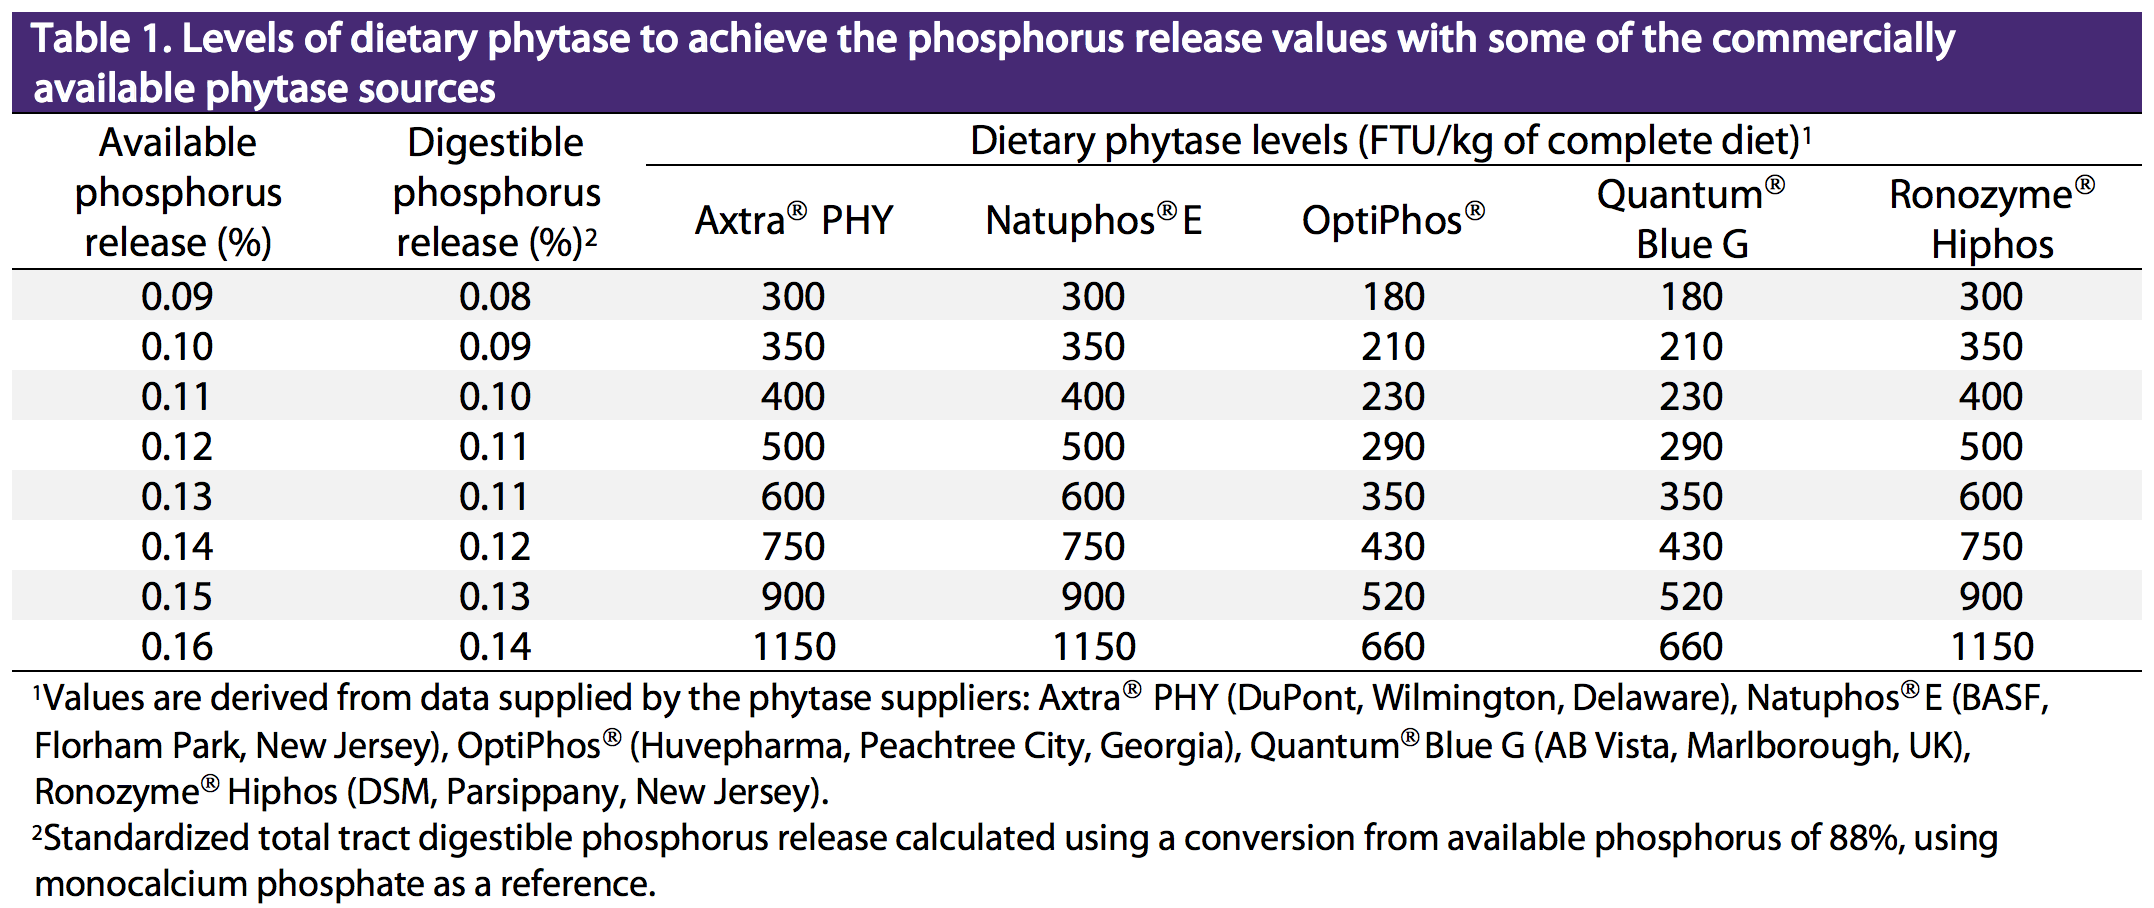 Levels of dietary phytase to phosphorus release values